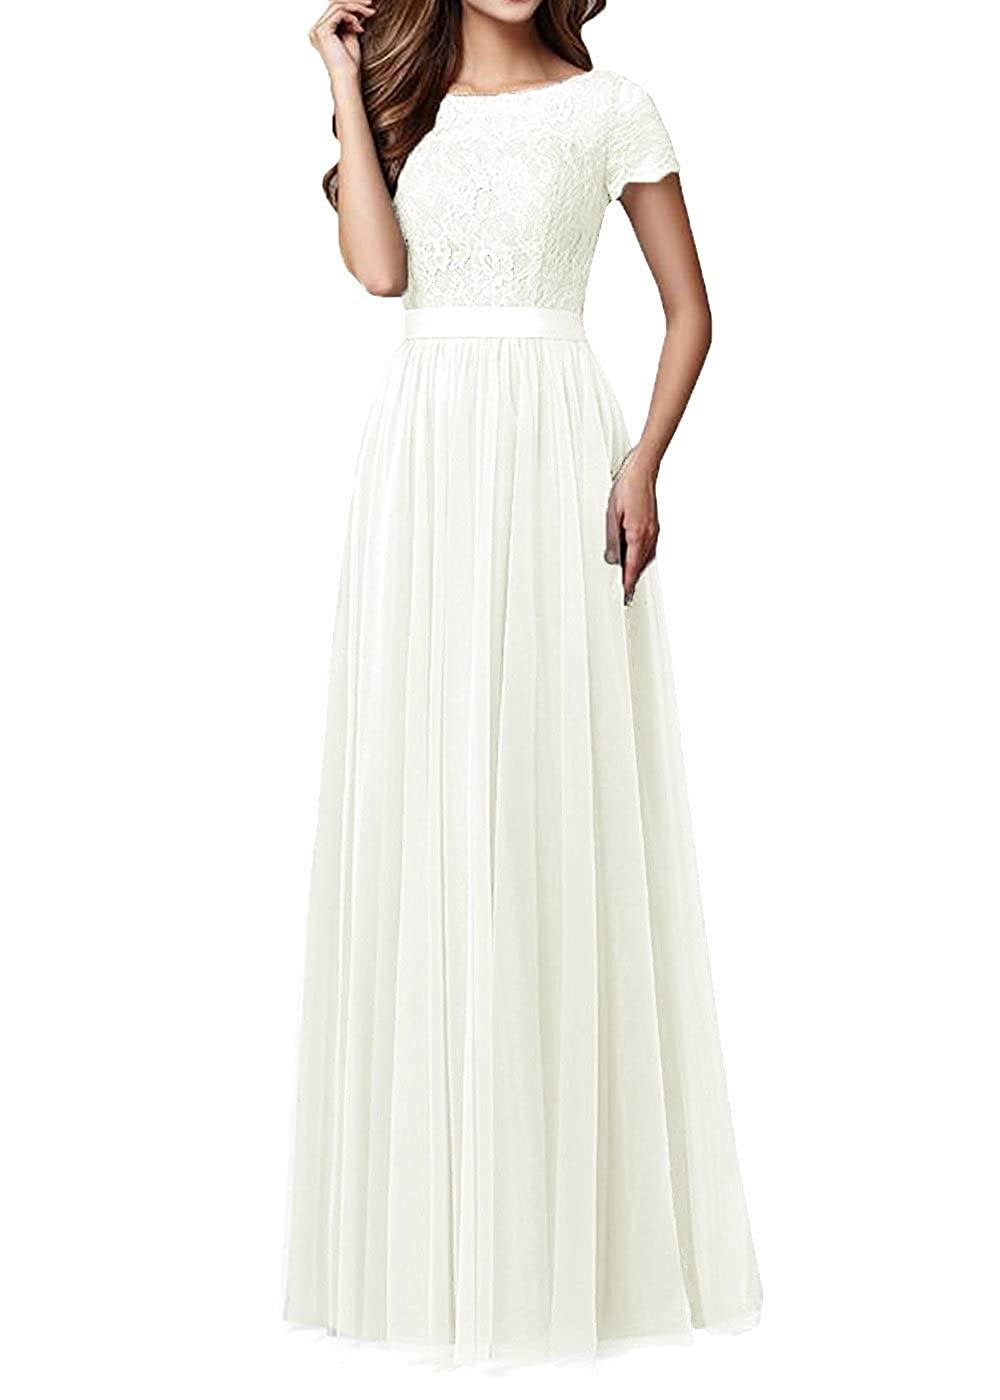 Ivory Pretygirl Womens Tulle Long Bridesmaid Dress Sleeves Lace Prom Evening Dresses